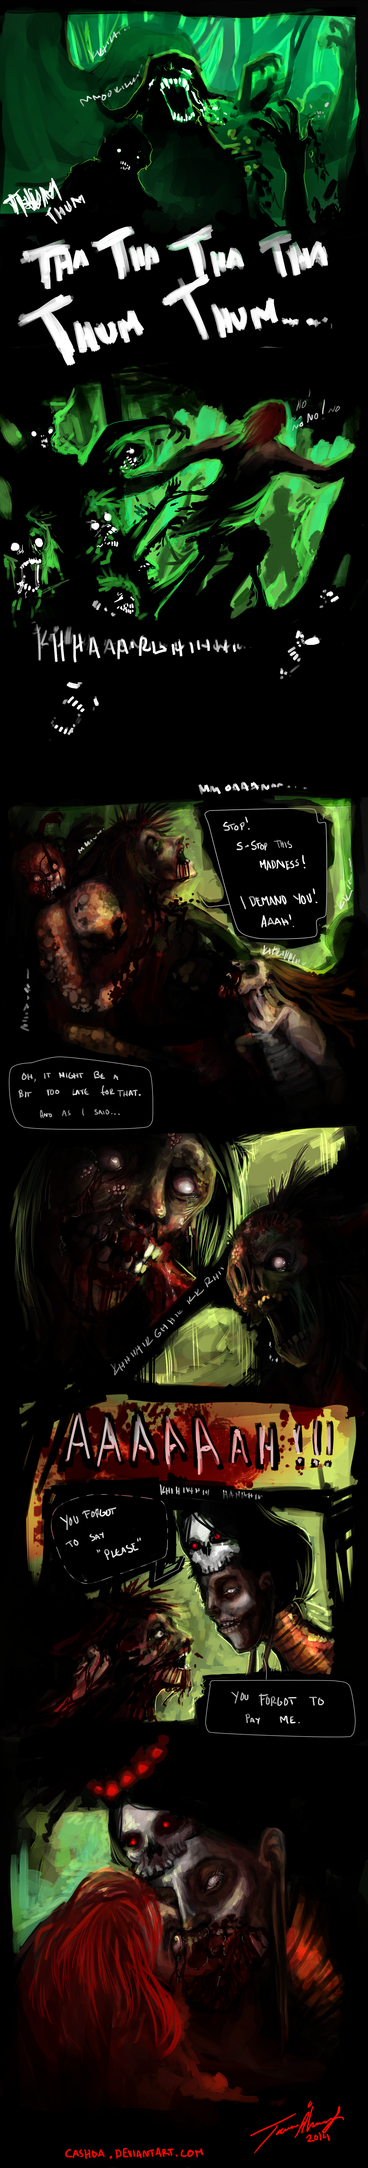 Witchdoctor (comic page 2) by Cashda